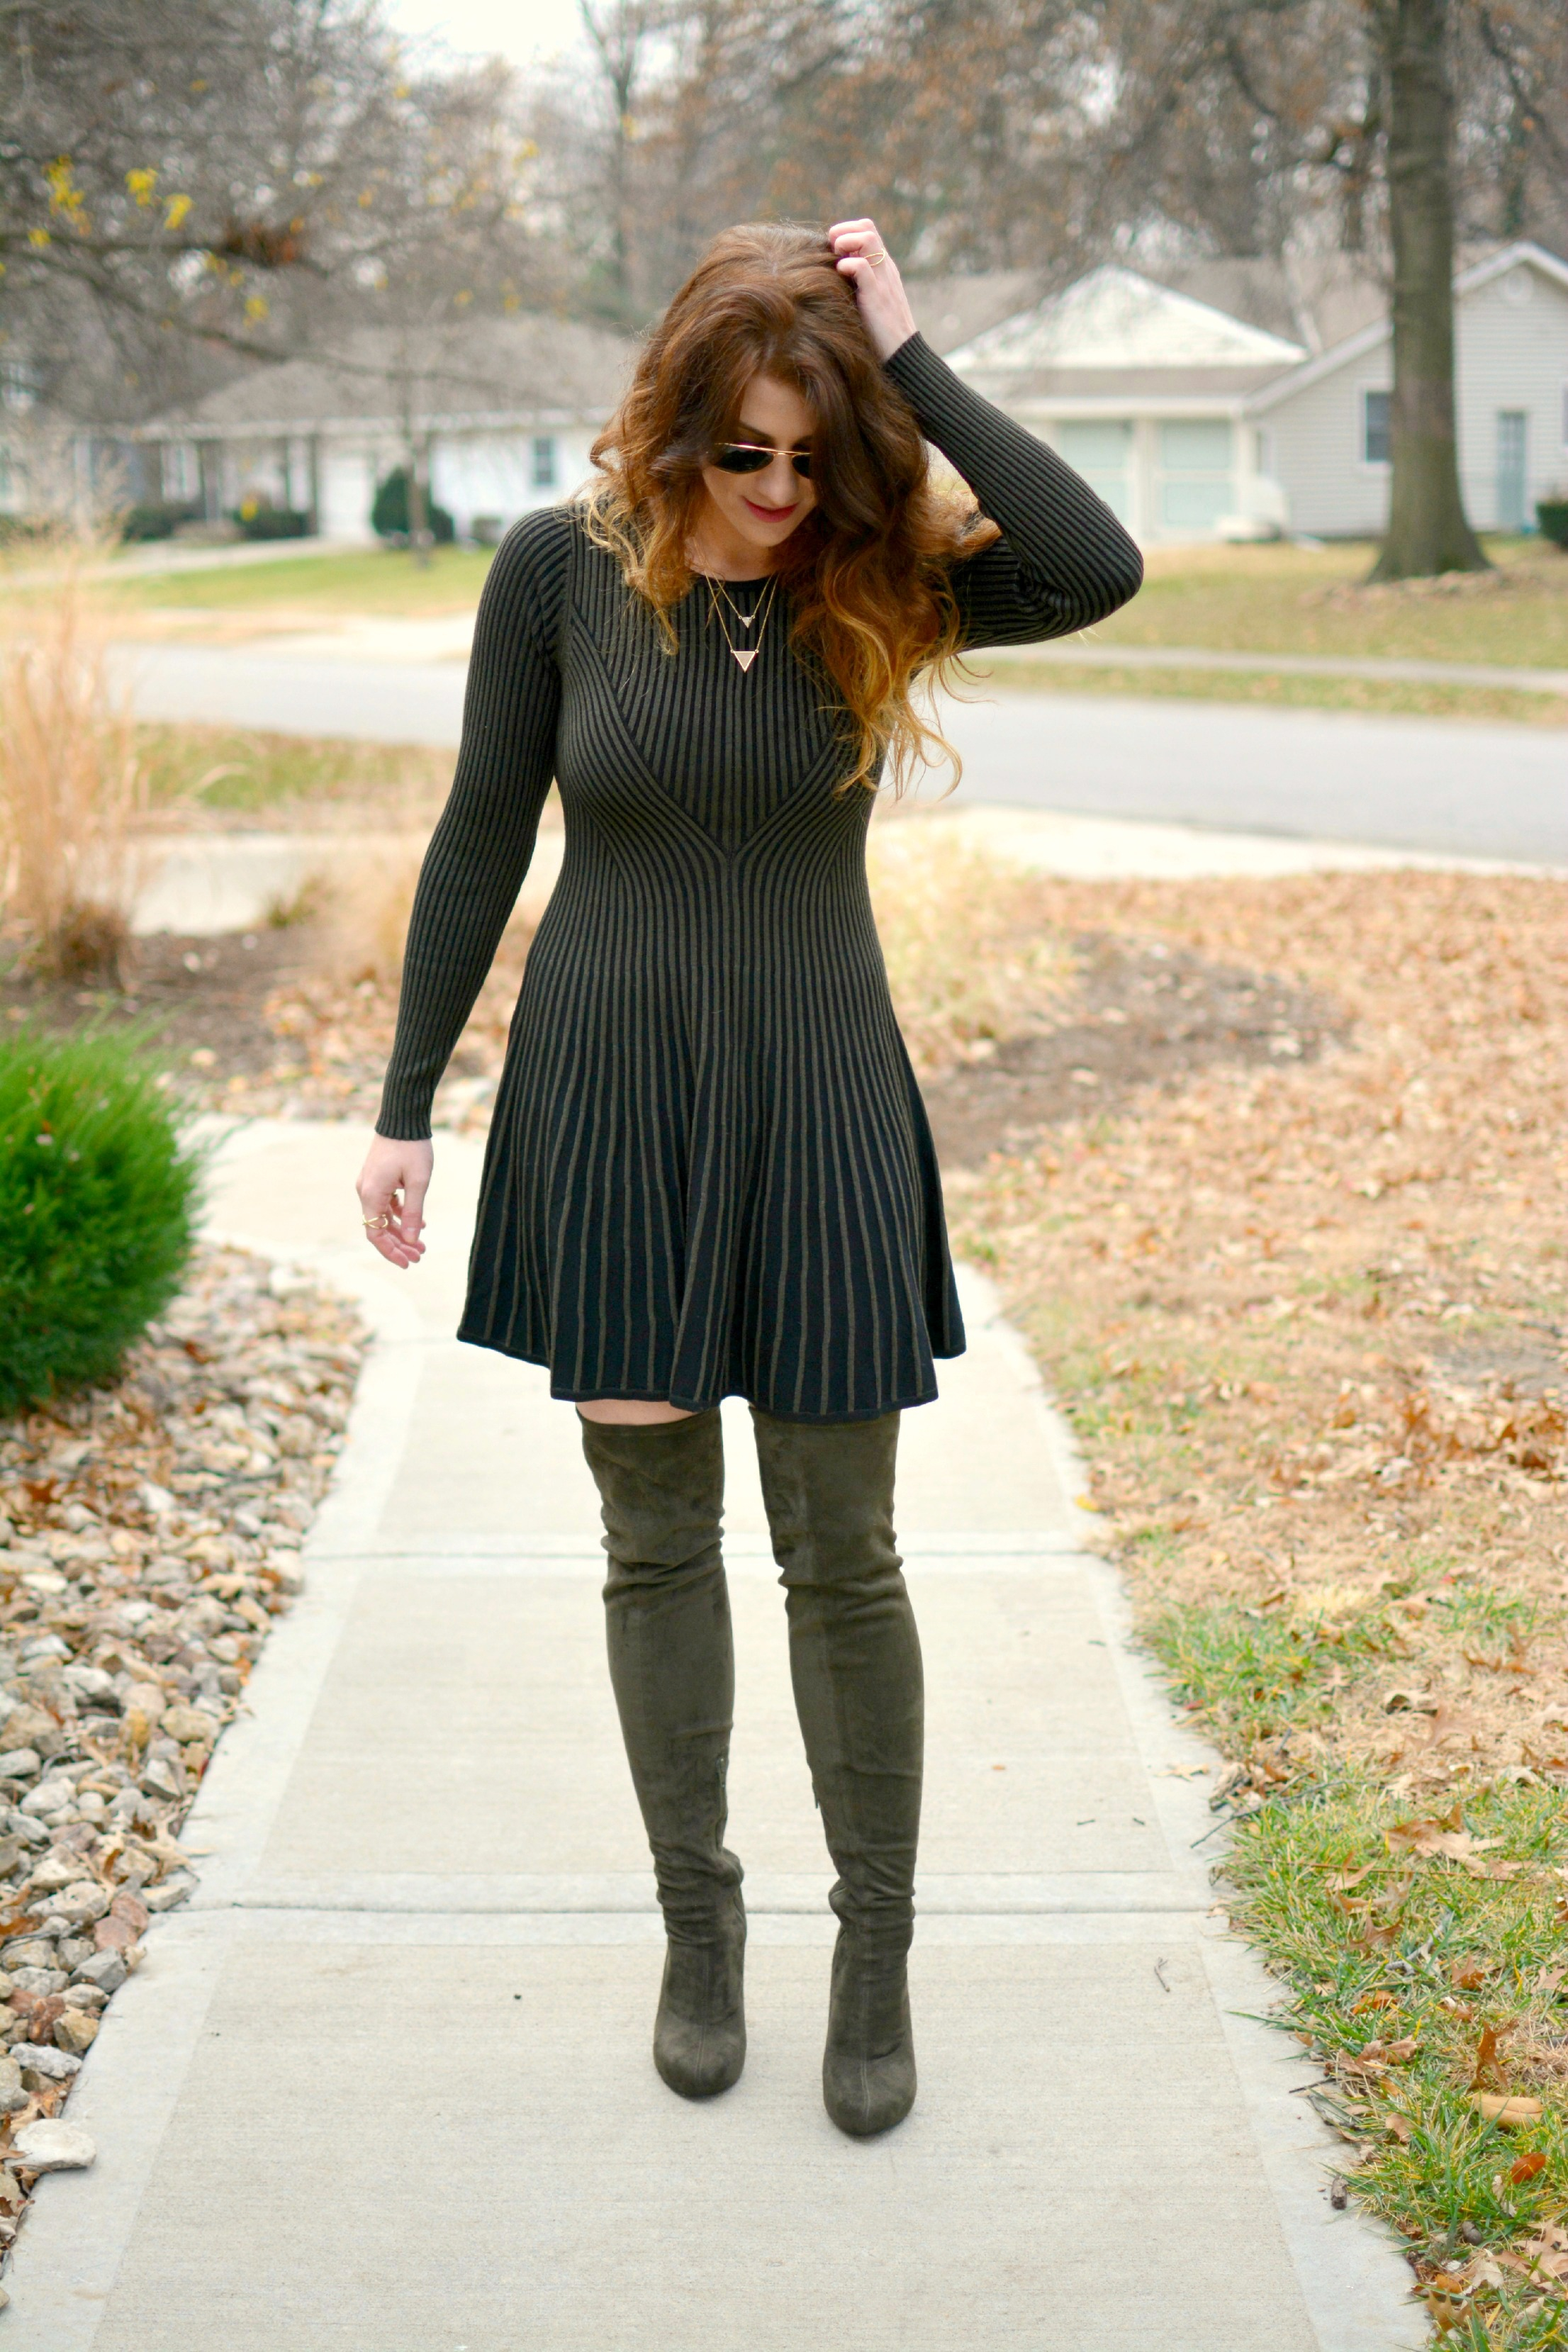 81725ecc5f4 Ashley from LSR in an Express sweater dress and over-the-knee olive green